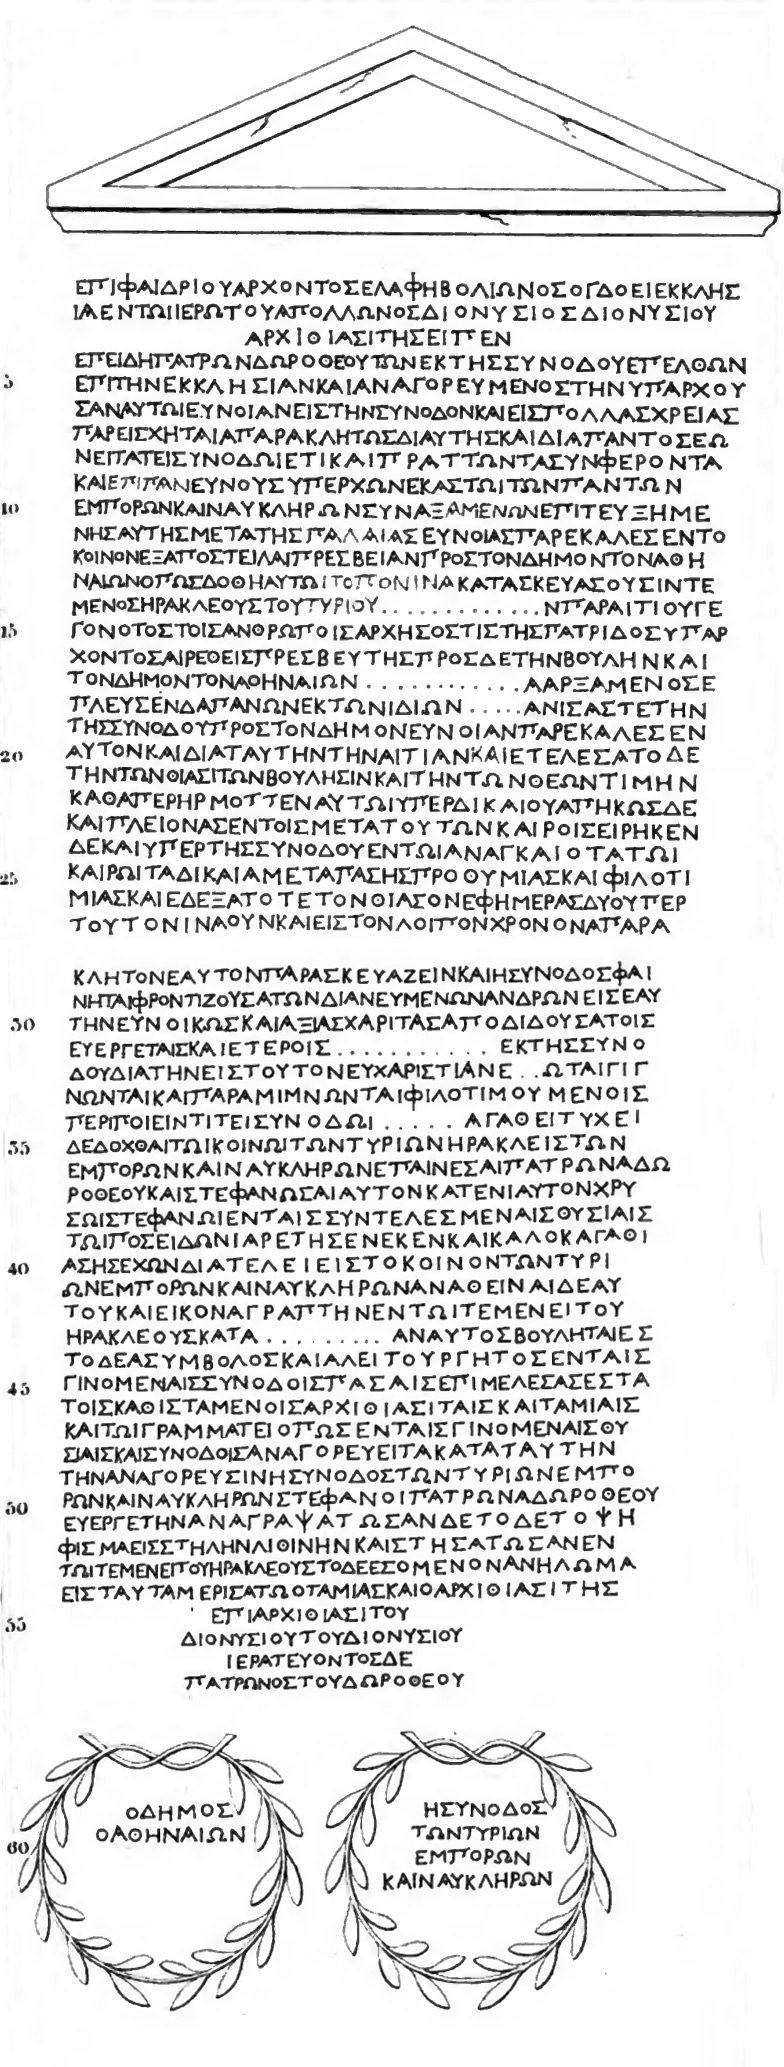 Facsimile of IDelos 1519 from Clarac, Musée de sculpture antique et moderne (Paris: Imprimerie Royale, 1841), vol. 2.2, plates 41-42. Public domain.